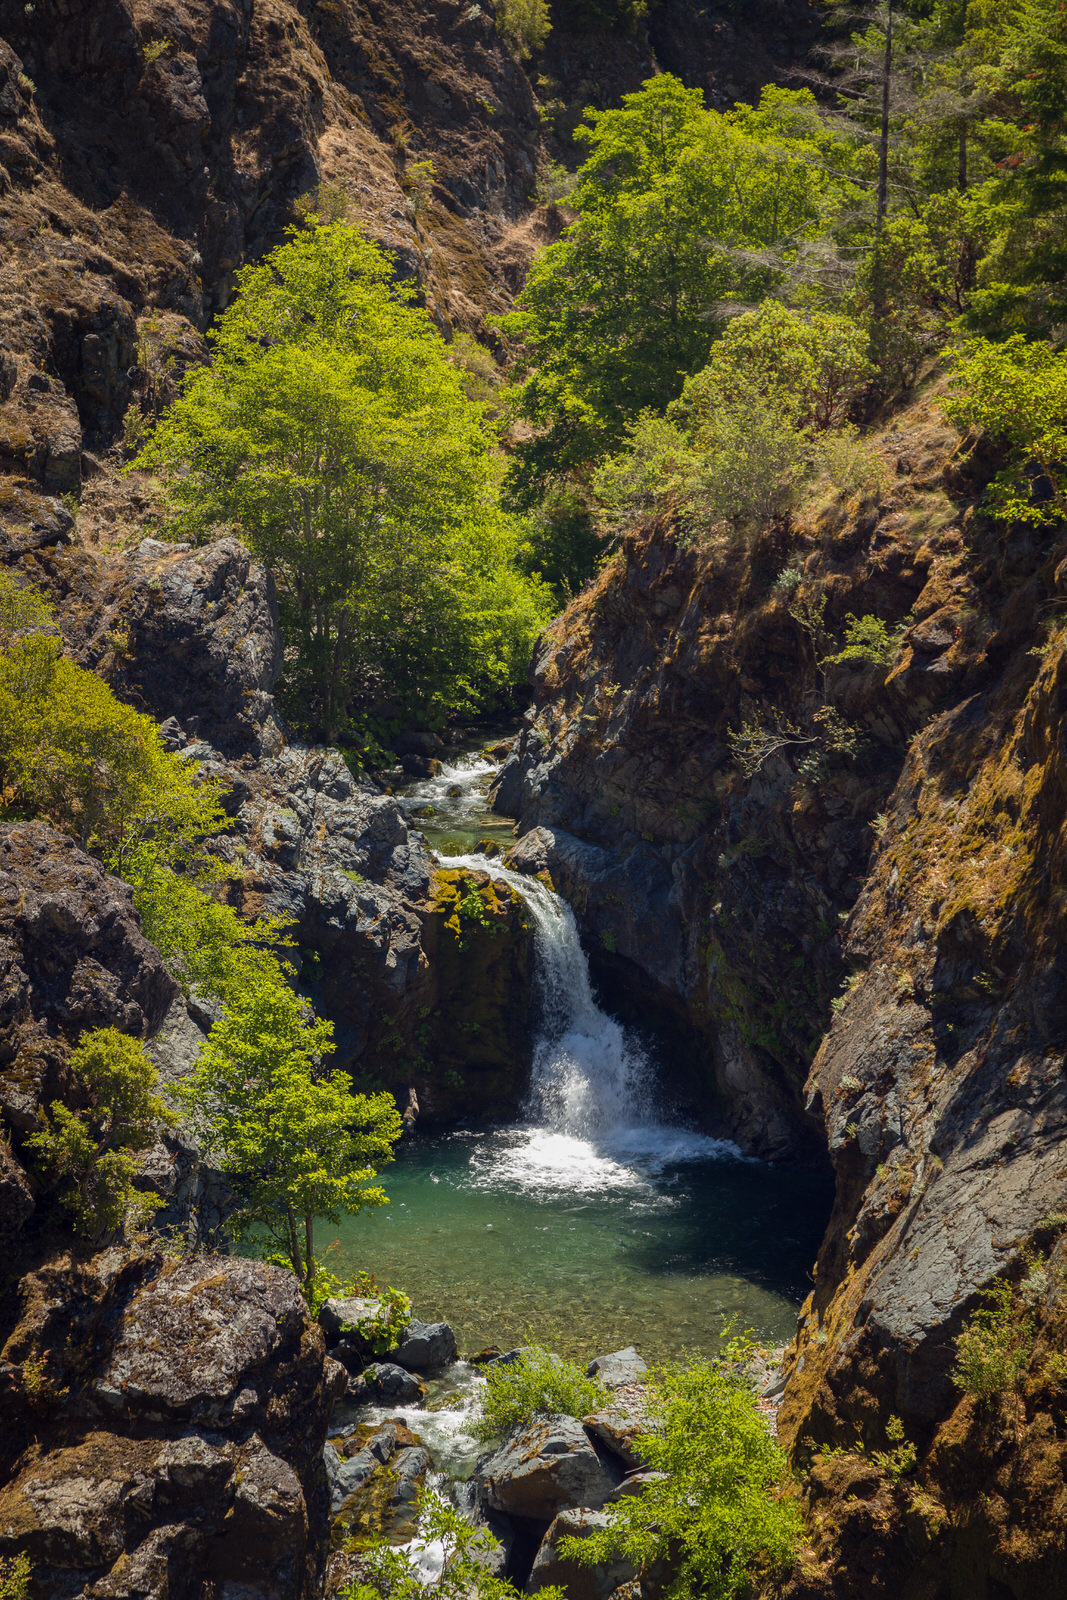 Stair Creek Falls on the Rogue River